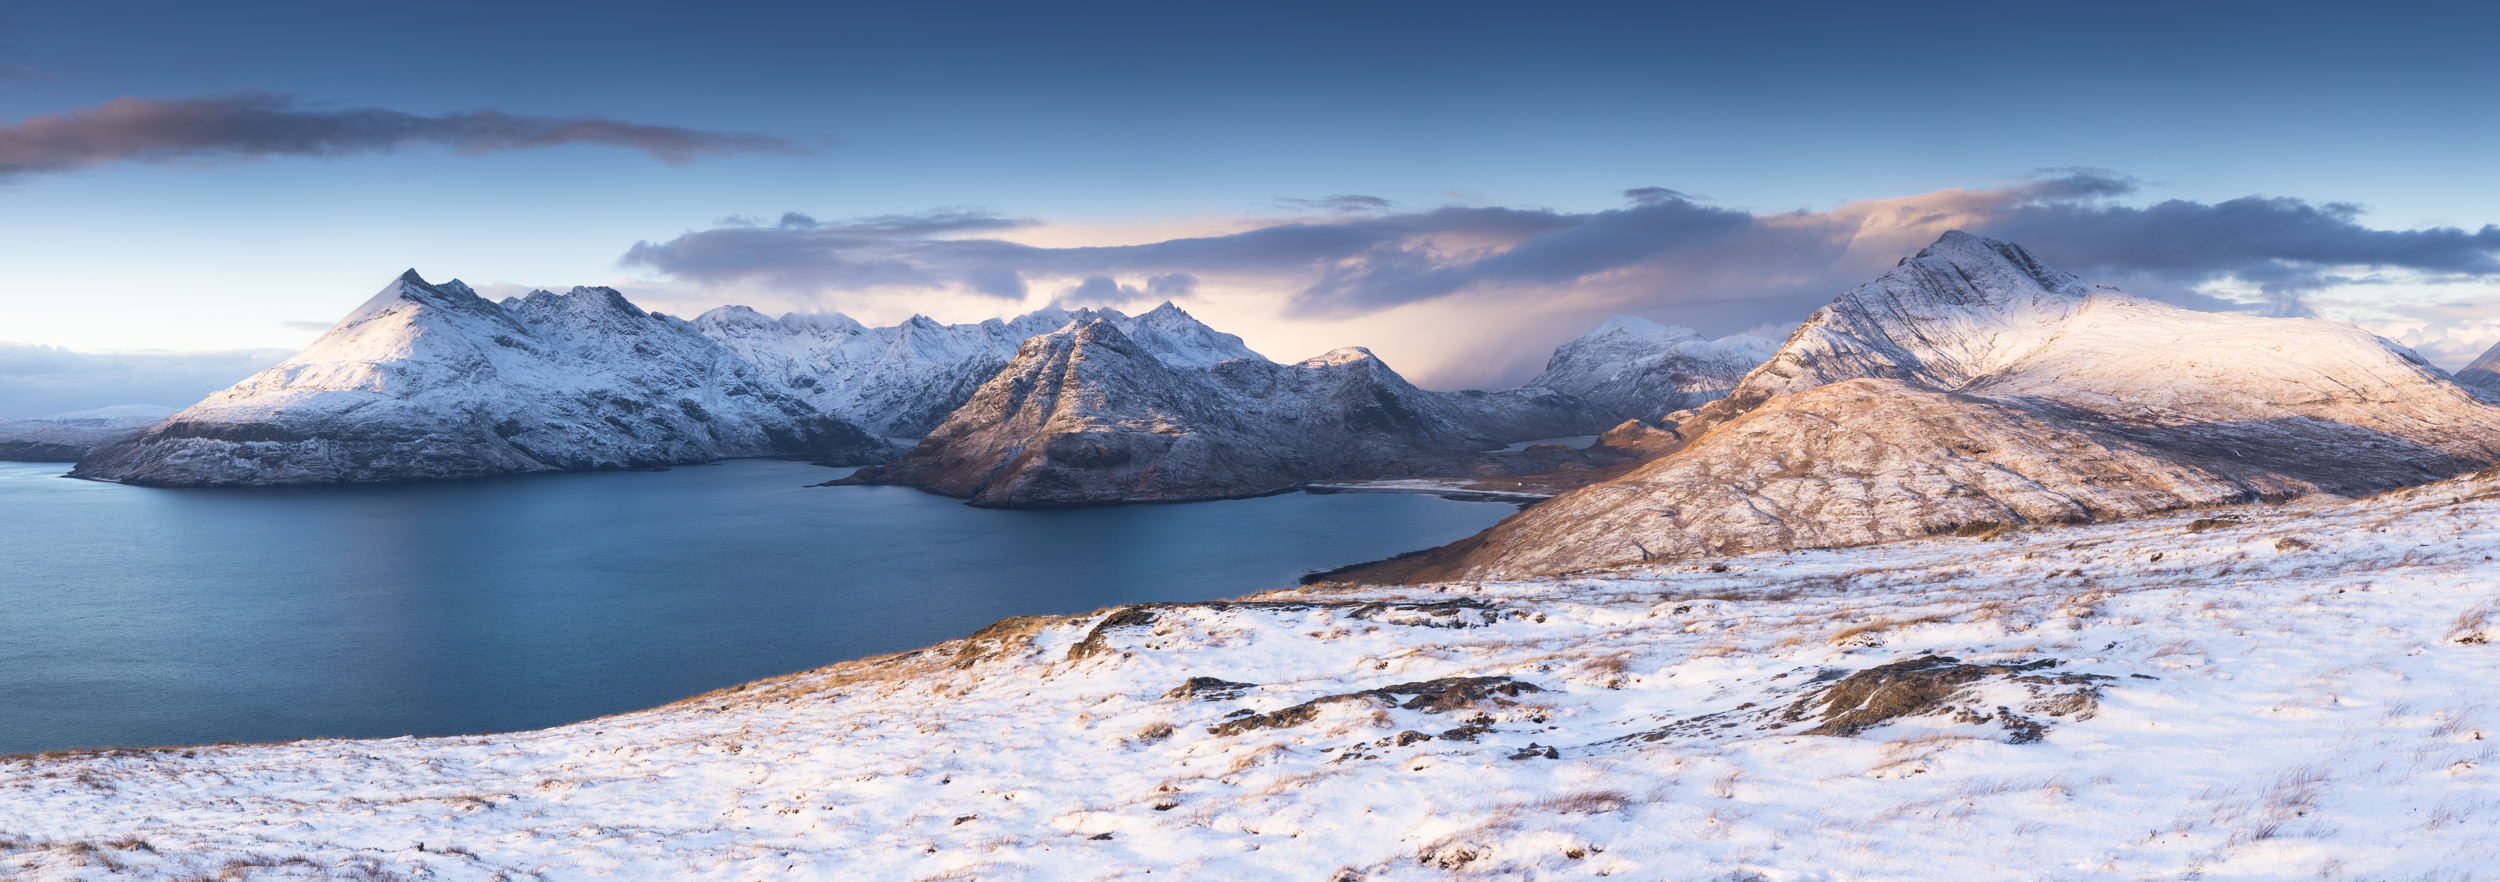 Ben Eaton-Williams - Landscape Photography -  www.brew.photography